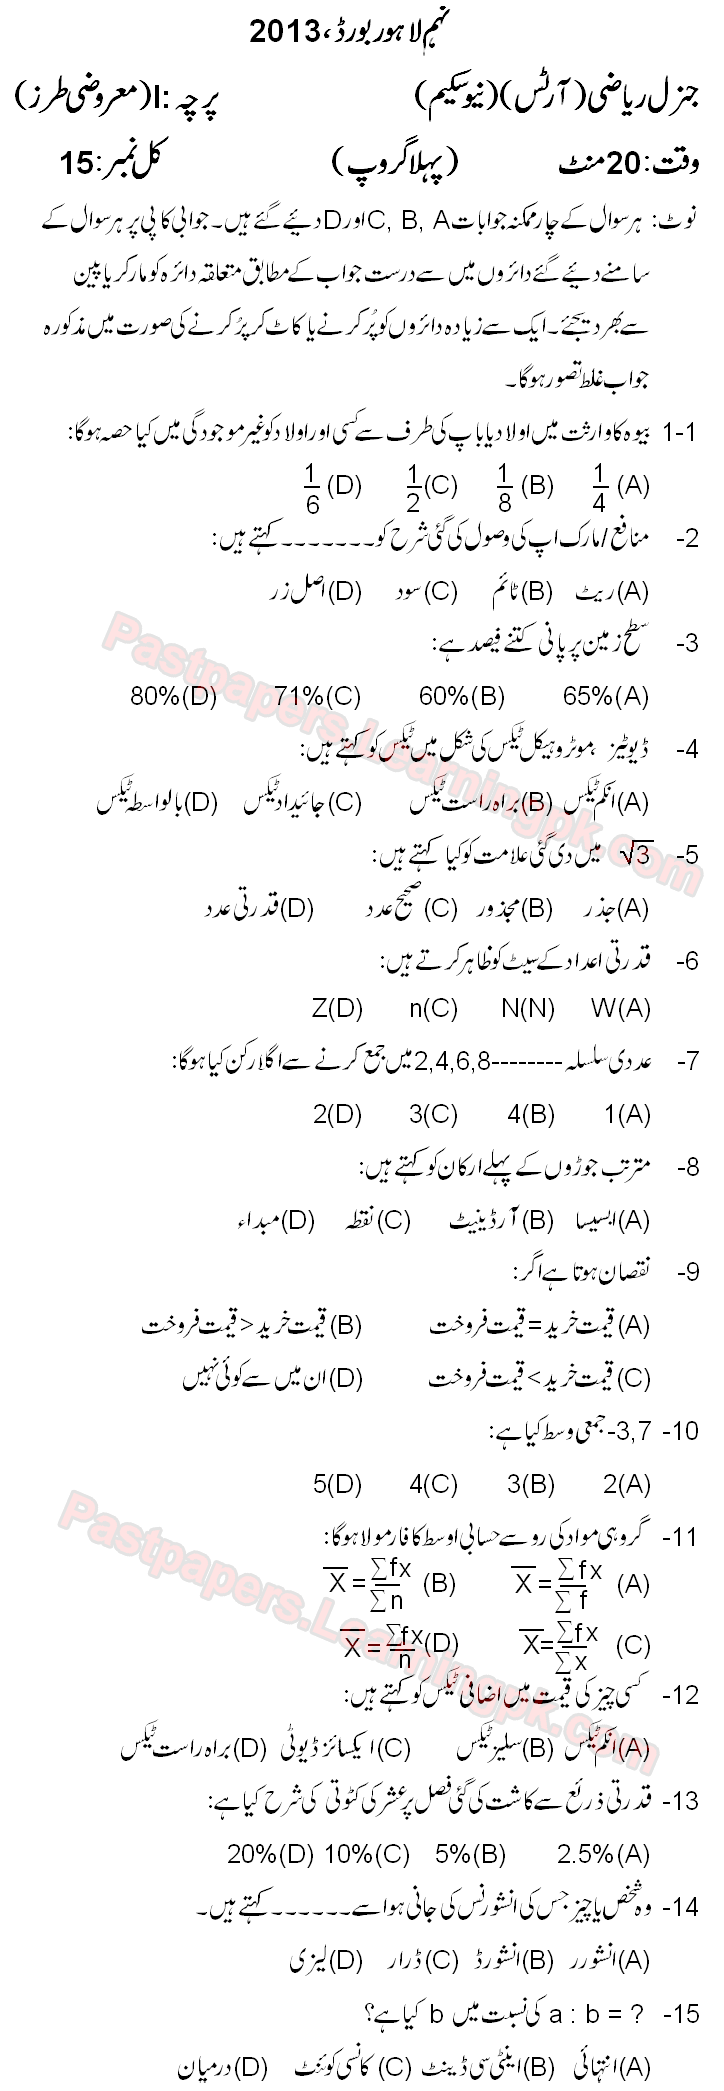 Lahore Board 2013 9th Class Math Past Papers 5 Year Old Guess